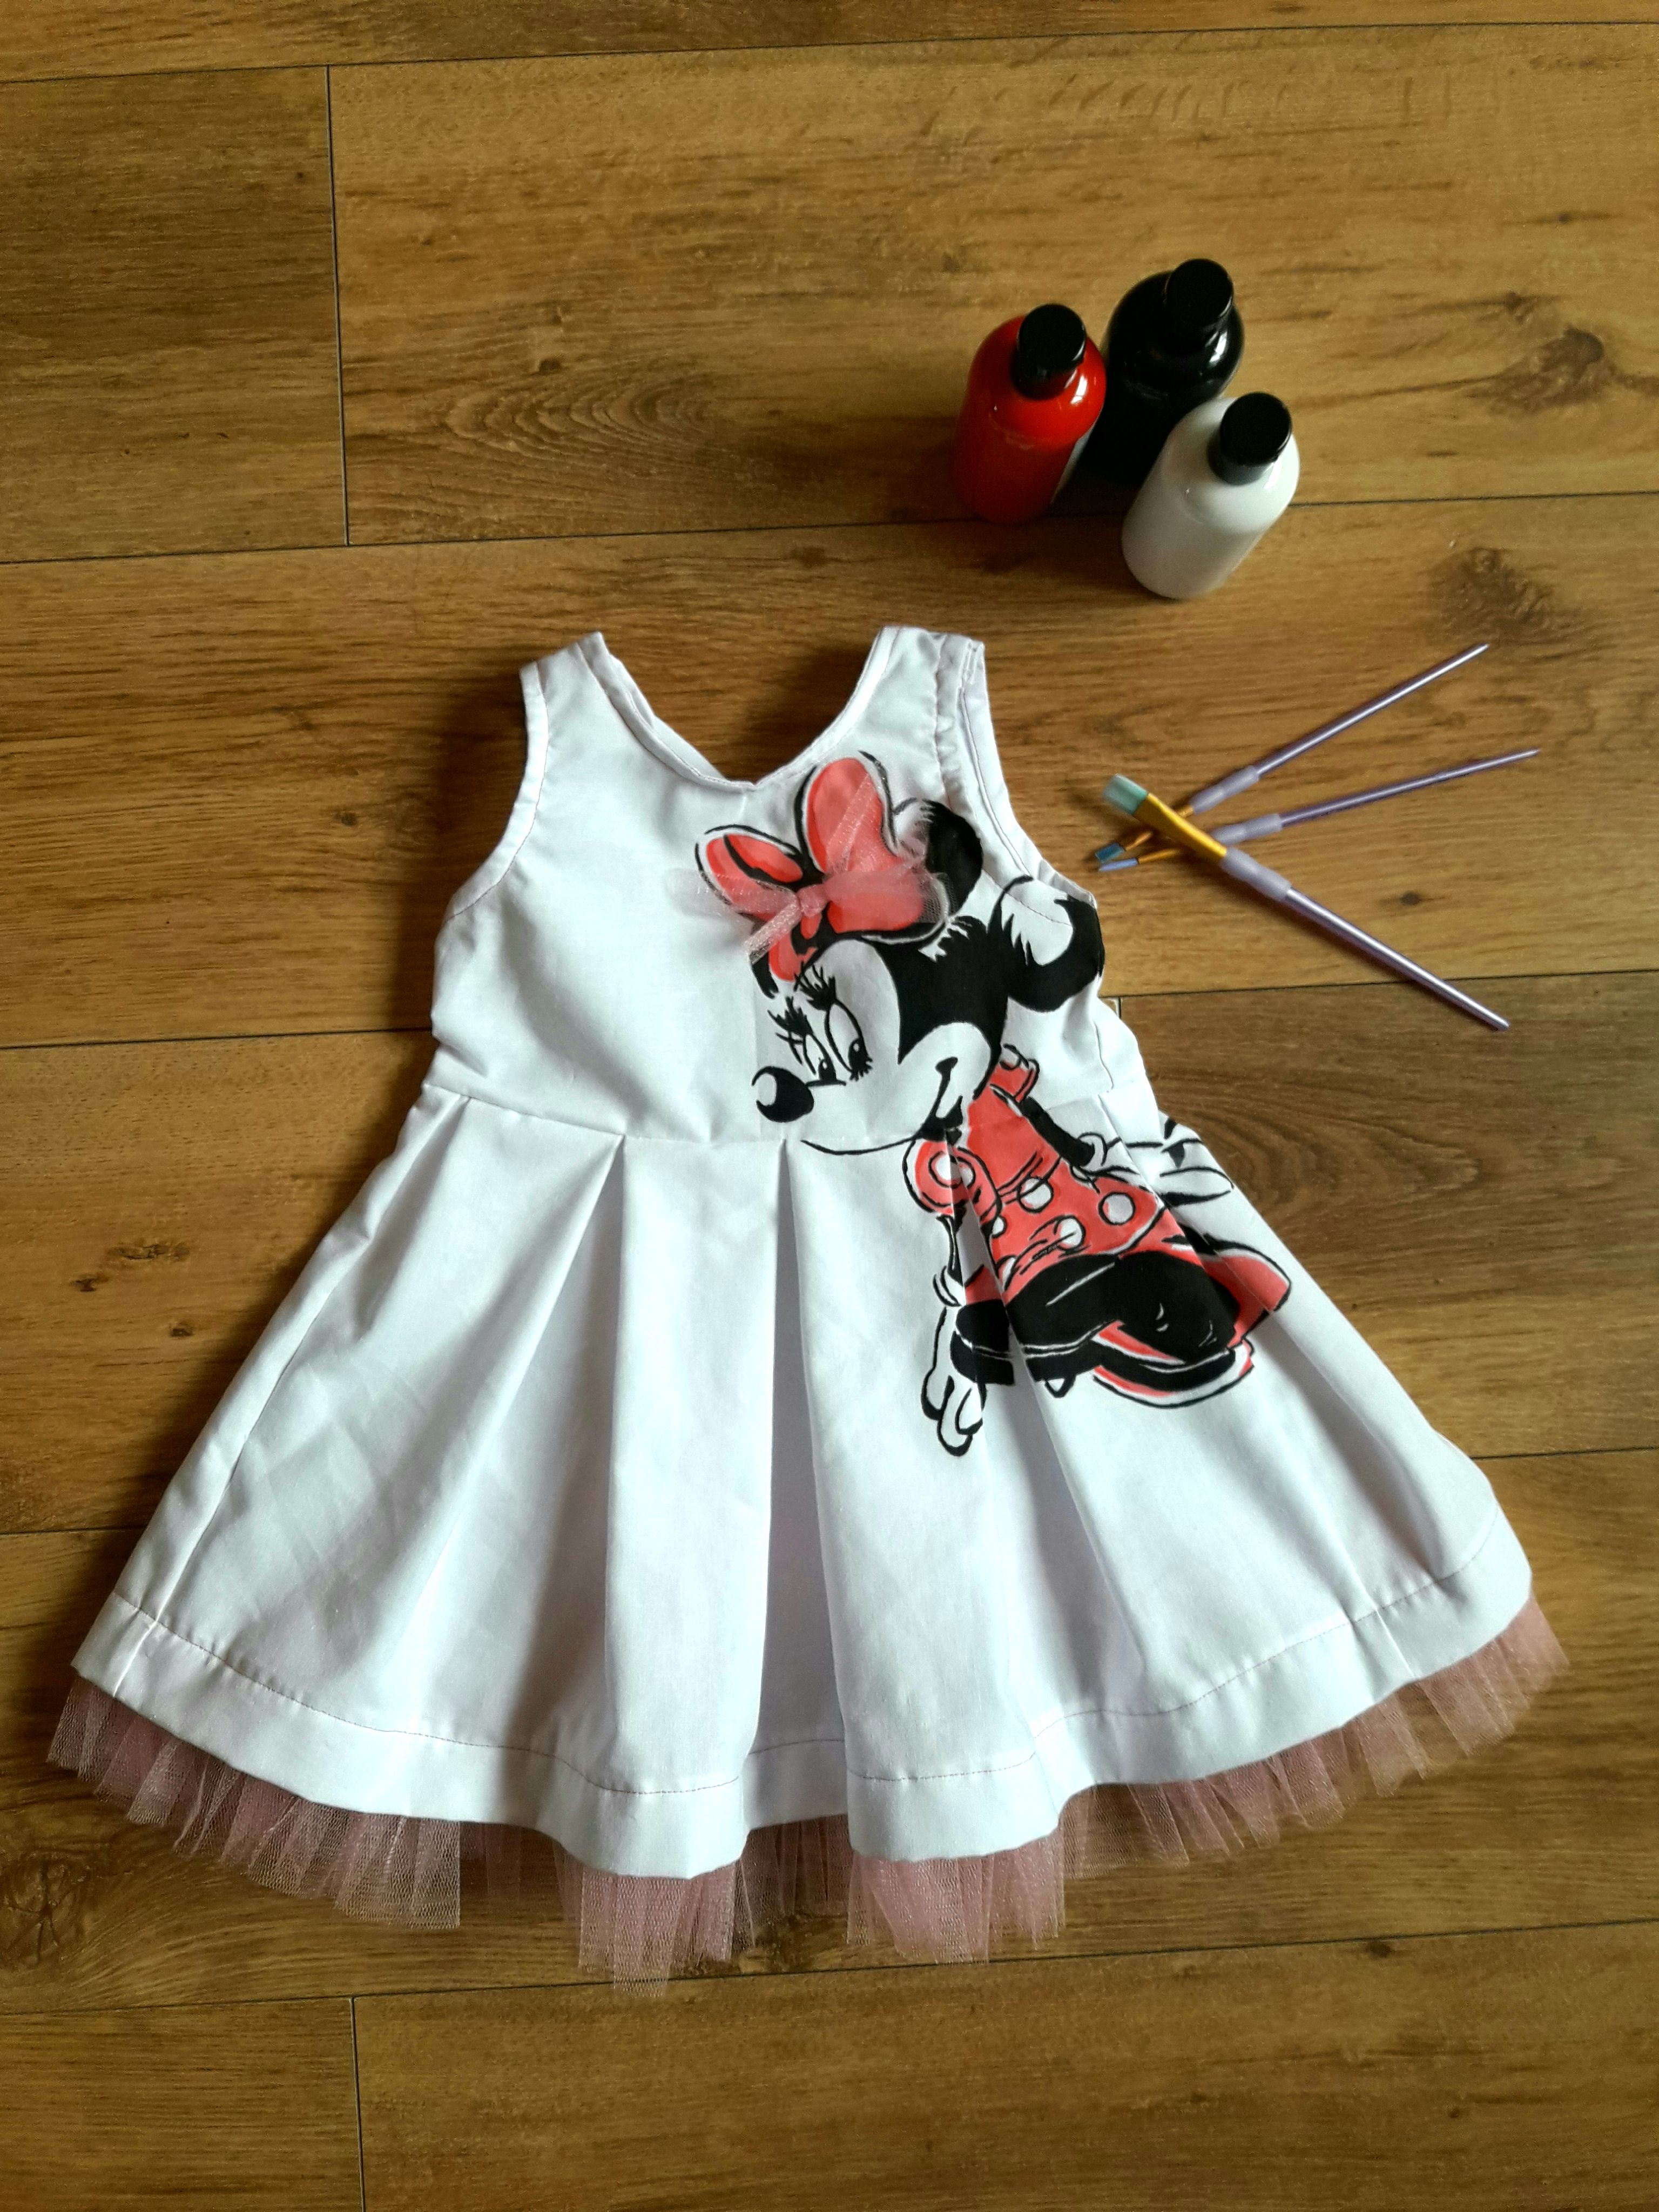 c86d1d644 Handmade Minnie Mouse dress with permanent paints. Any character ...